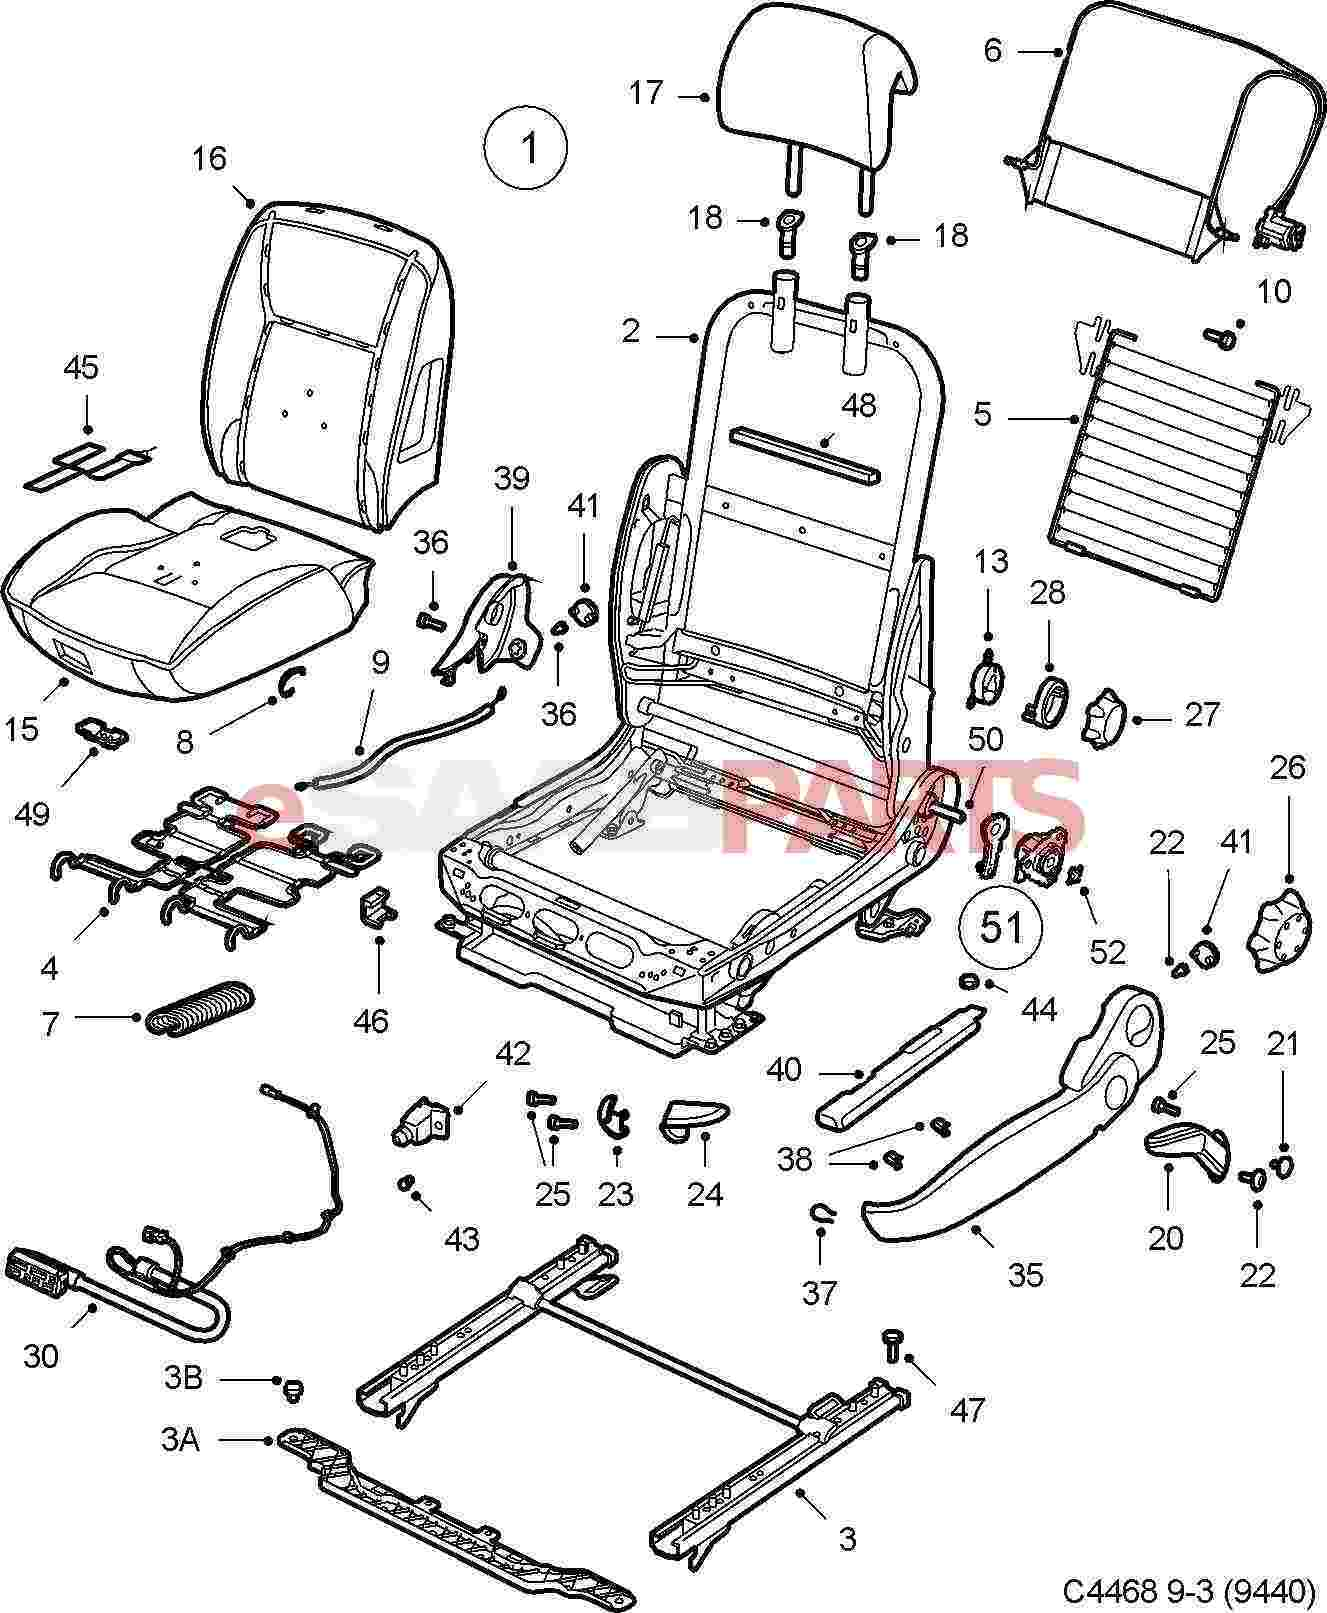 hight resolution of saab 9 3 seat diagram automotive wiring diagrams 2005 durango electric heated seats saab 9 3